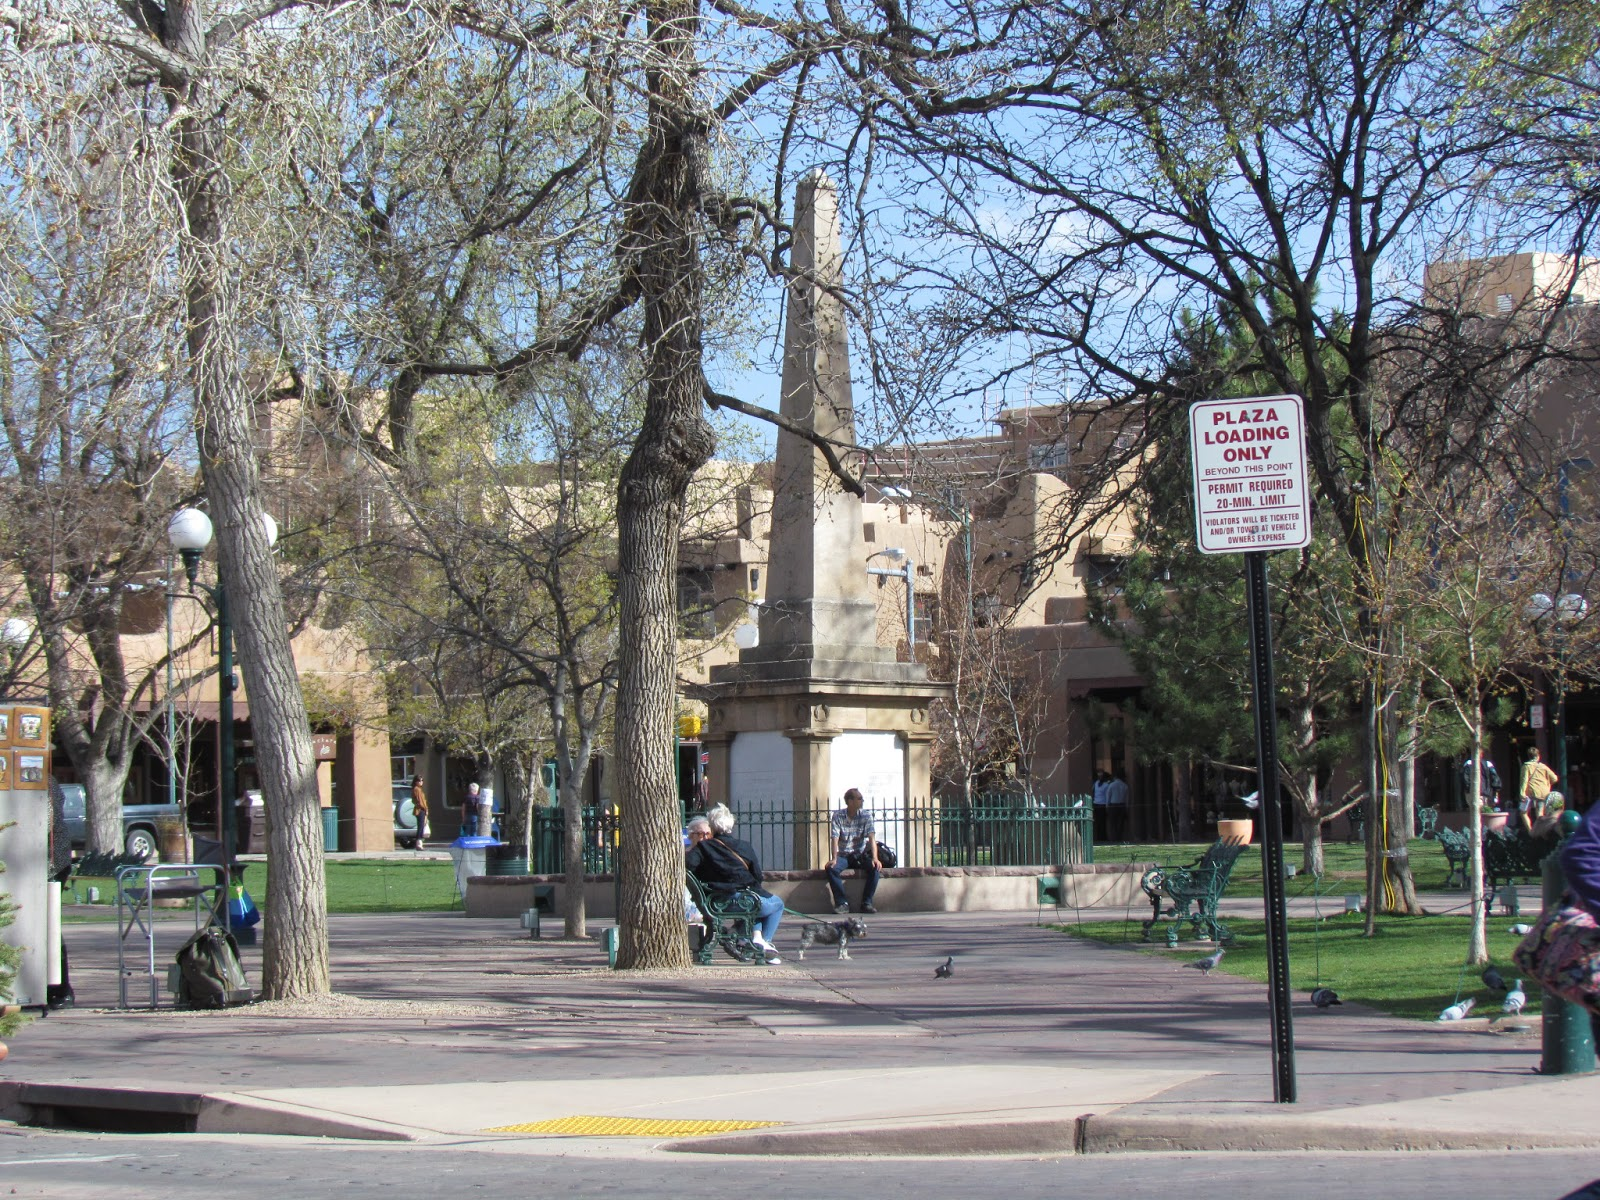 One of the things I really enjoy about Santa Fe is the architecture